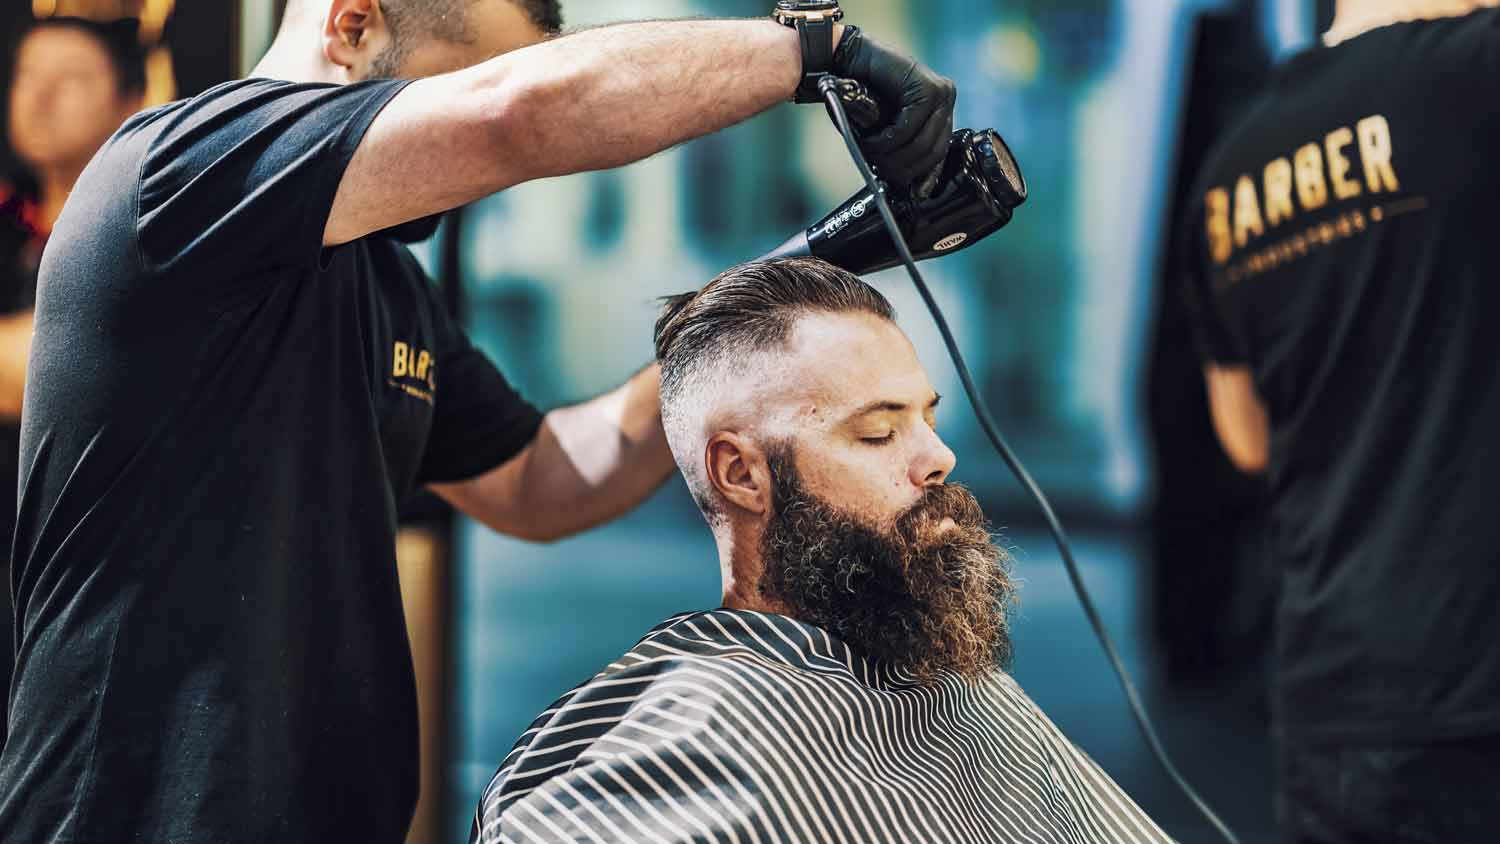 Barber Gives Haircut and Beard Treatment To man with Long Beard